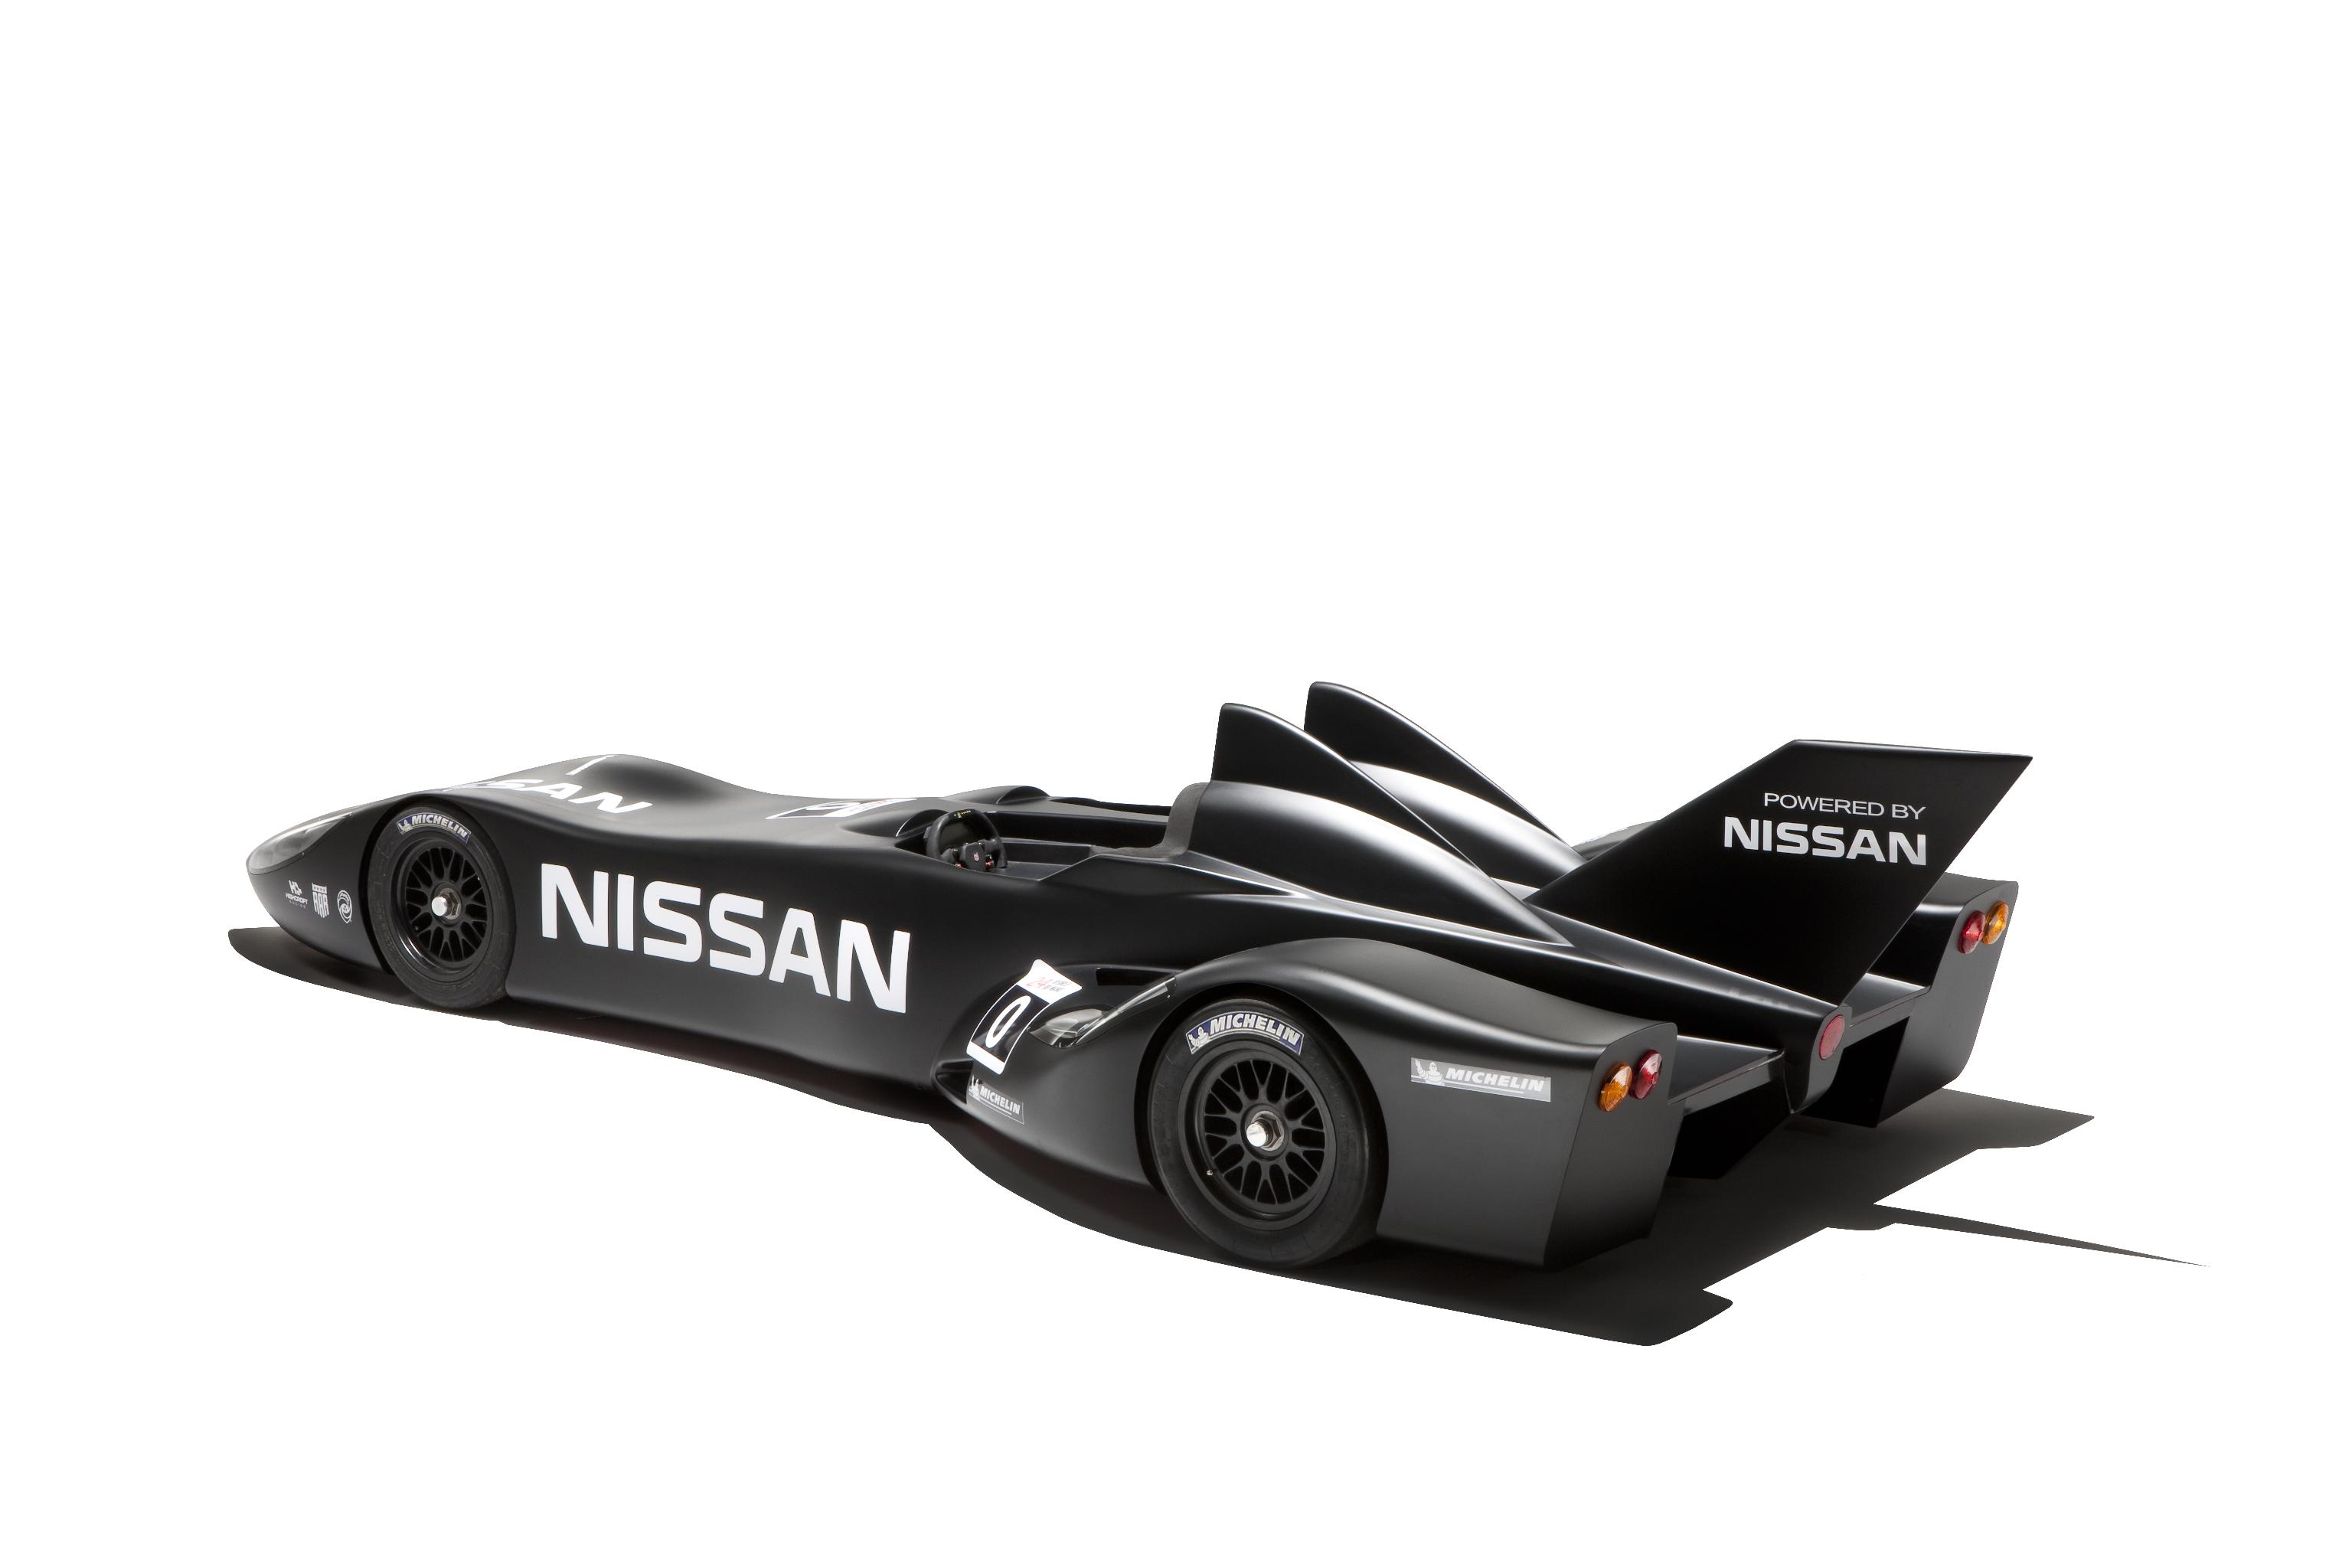 Nissan DeltaWing Batmobile Rear Profile